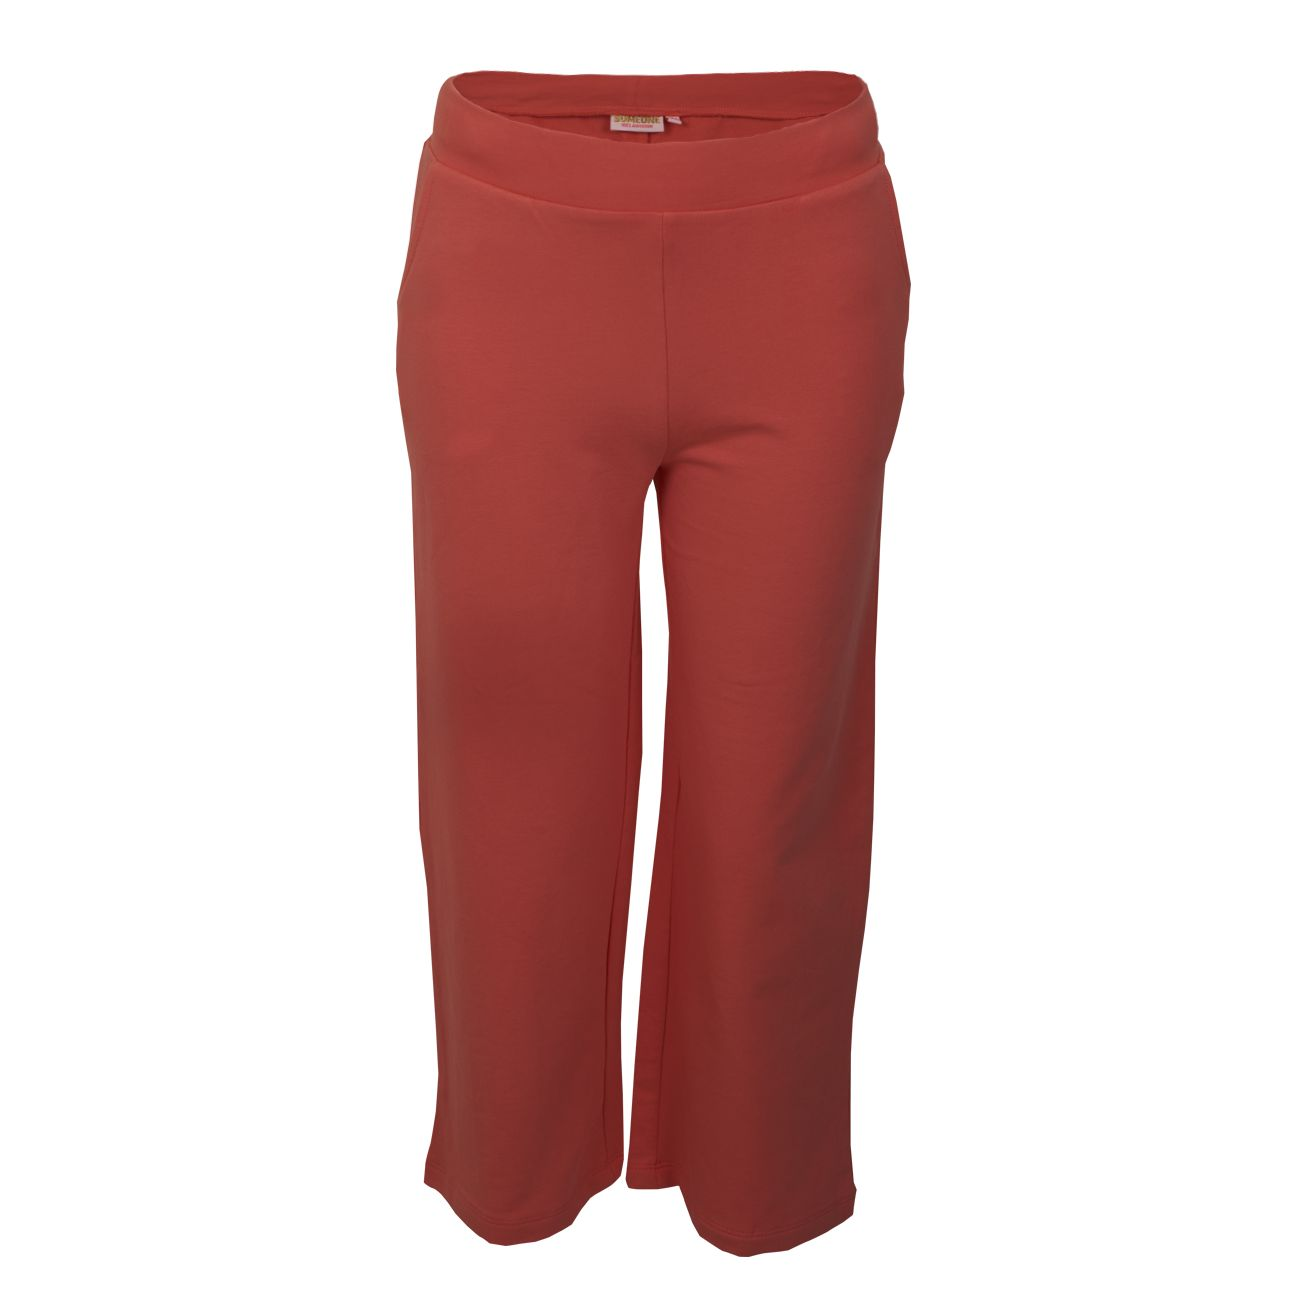 Culotte 110 Coral SOMEONE 100% Awesome